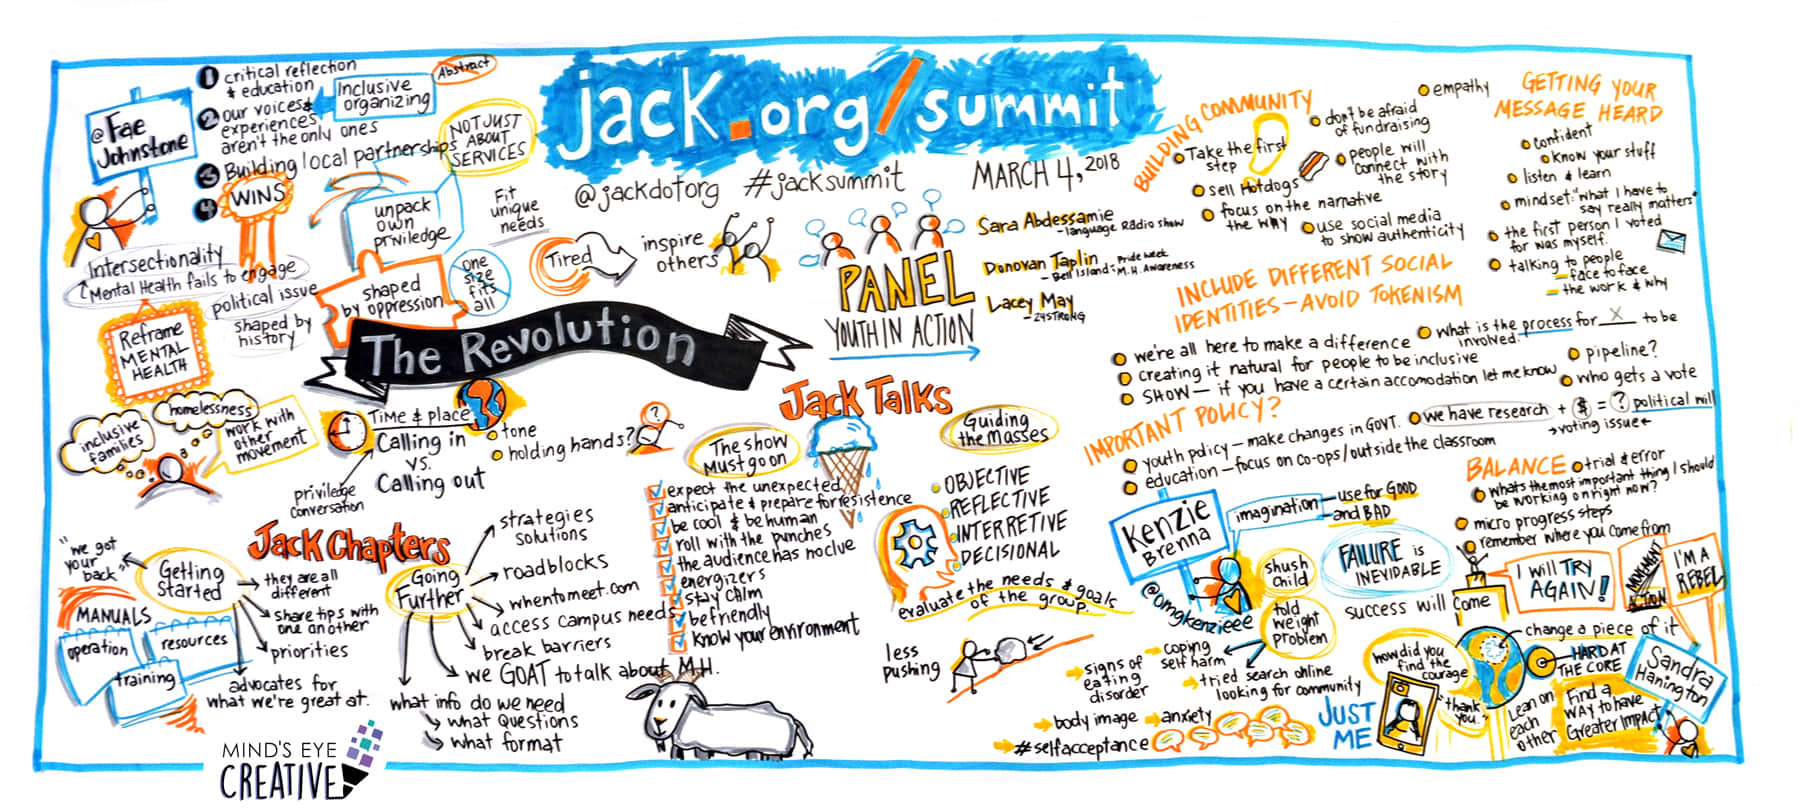 Minds Eye Creative graphic from Jack summit 2018